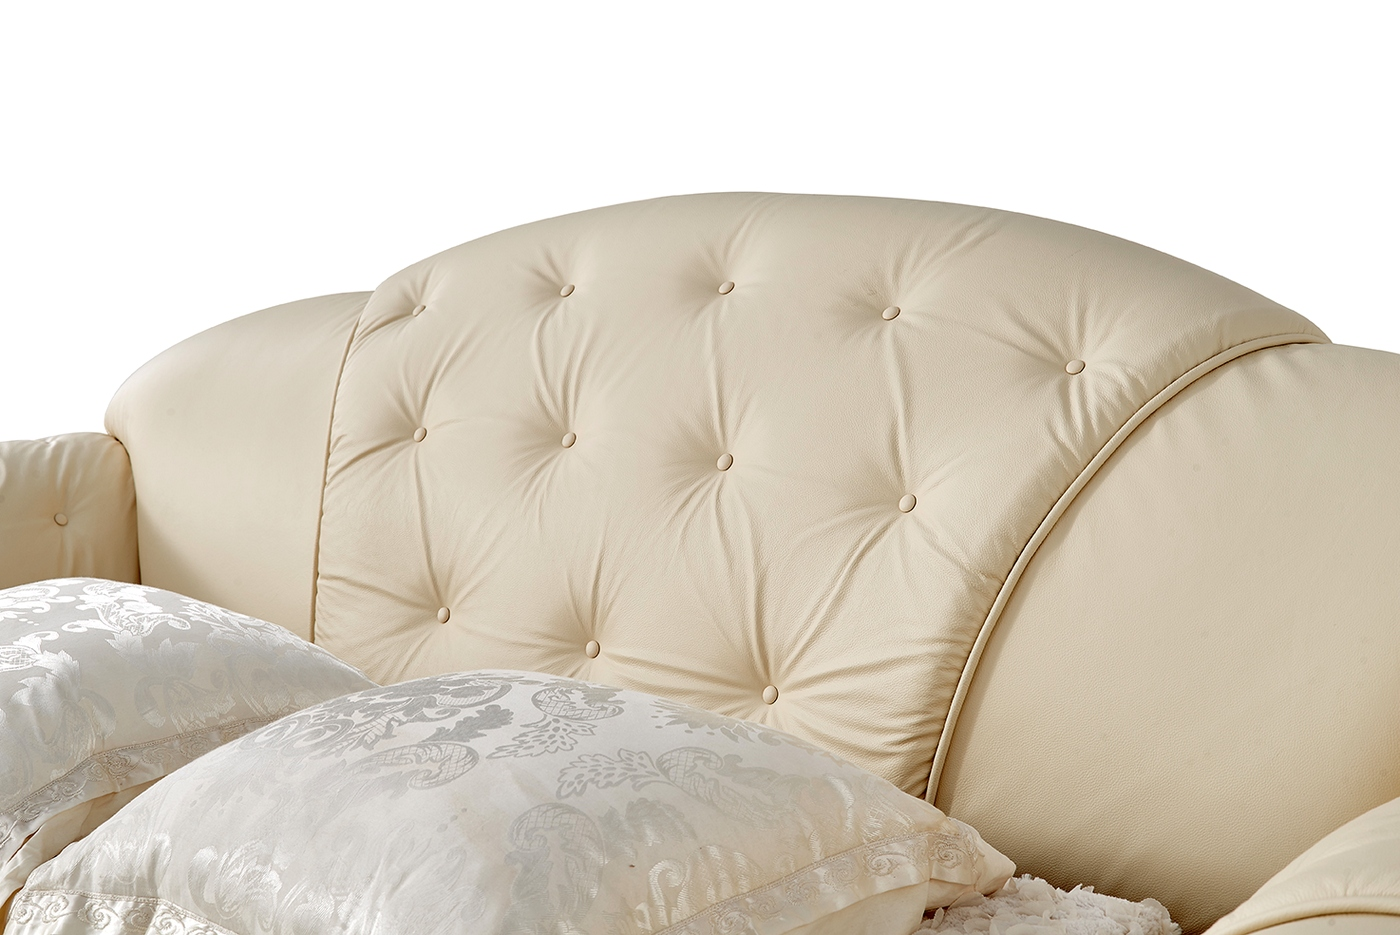 italian leather sofa sleeper ashley franden durablend reviews versace luxury button tufted ivory pull